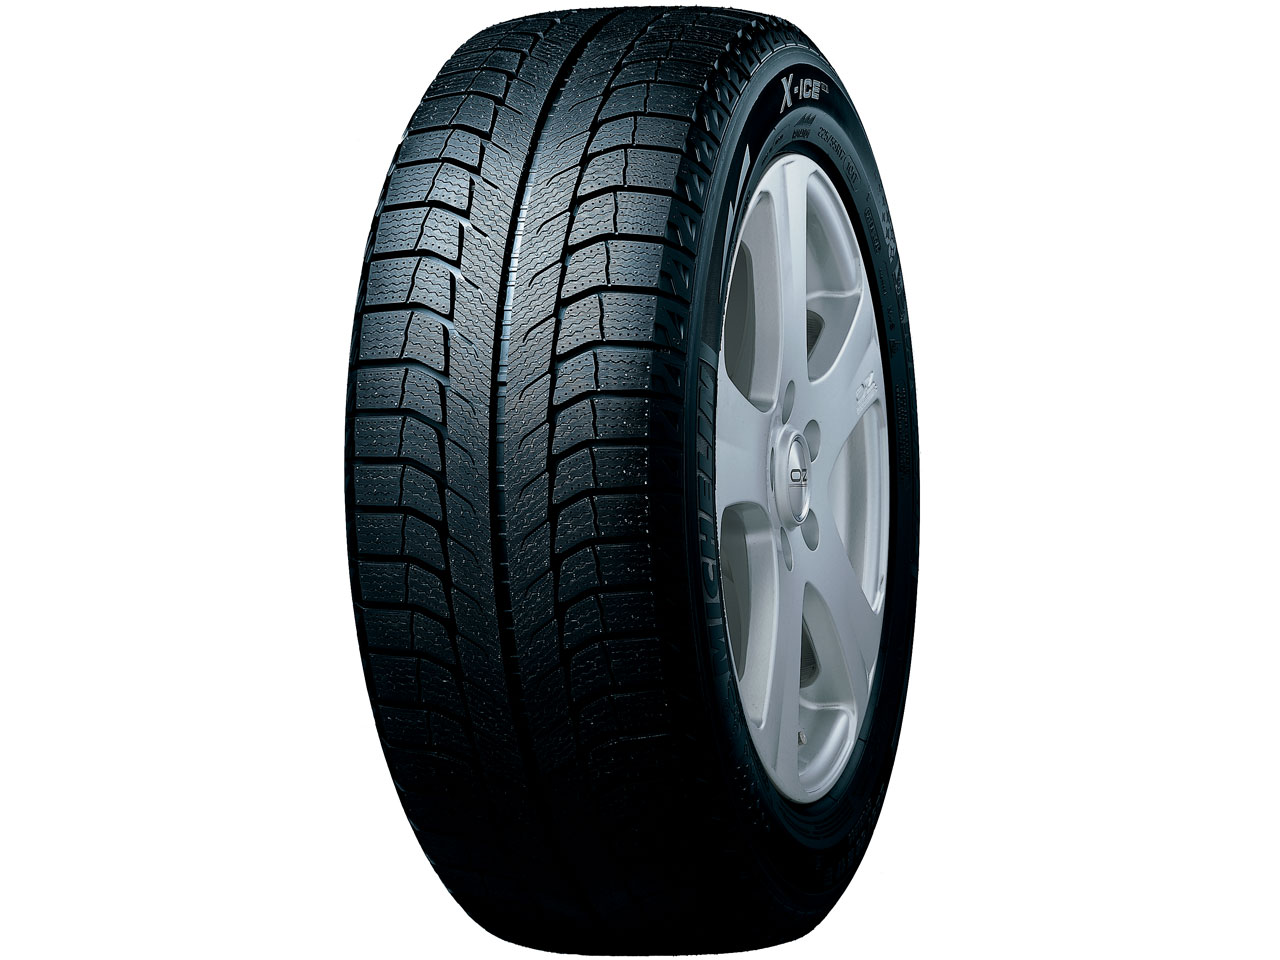 X-ICE XI2 205/55R16 94T XL の製品画像